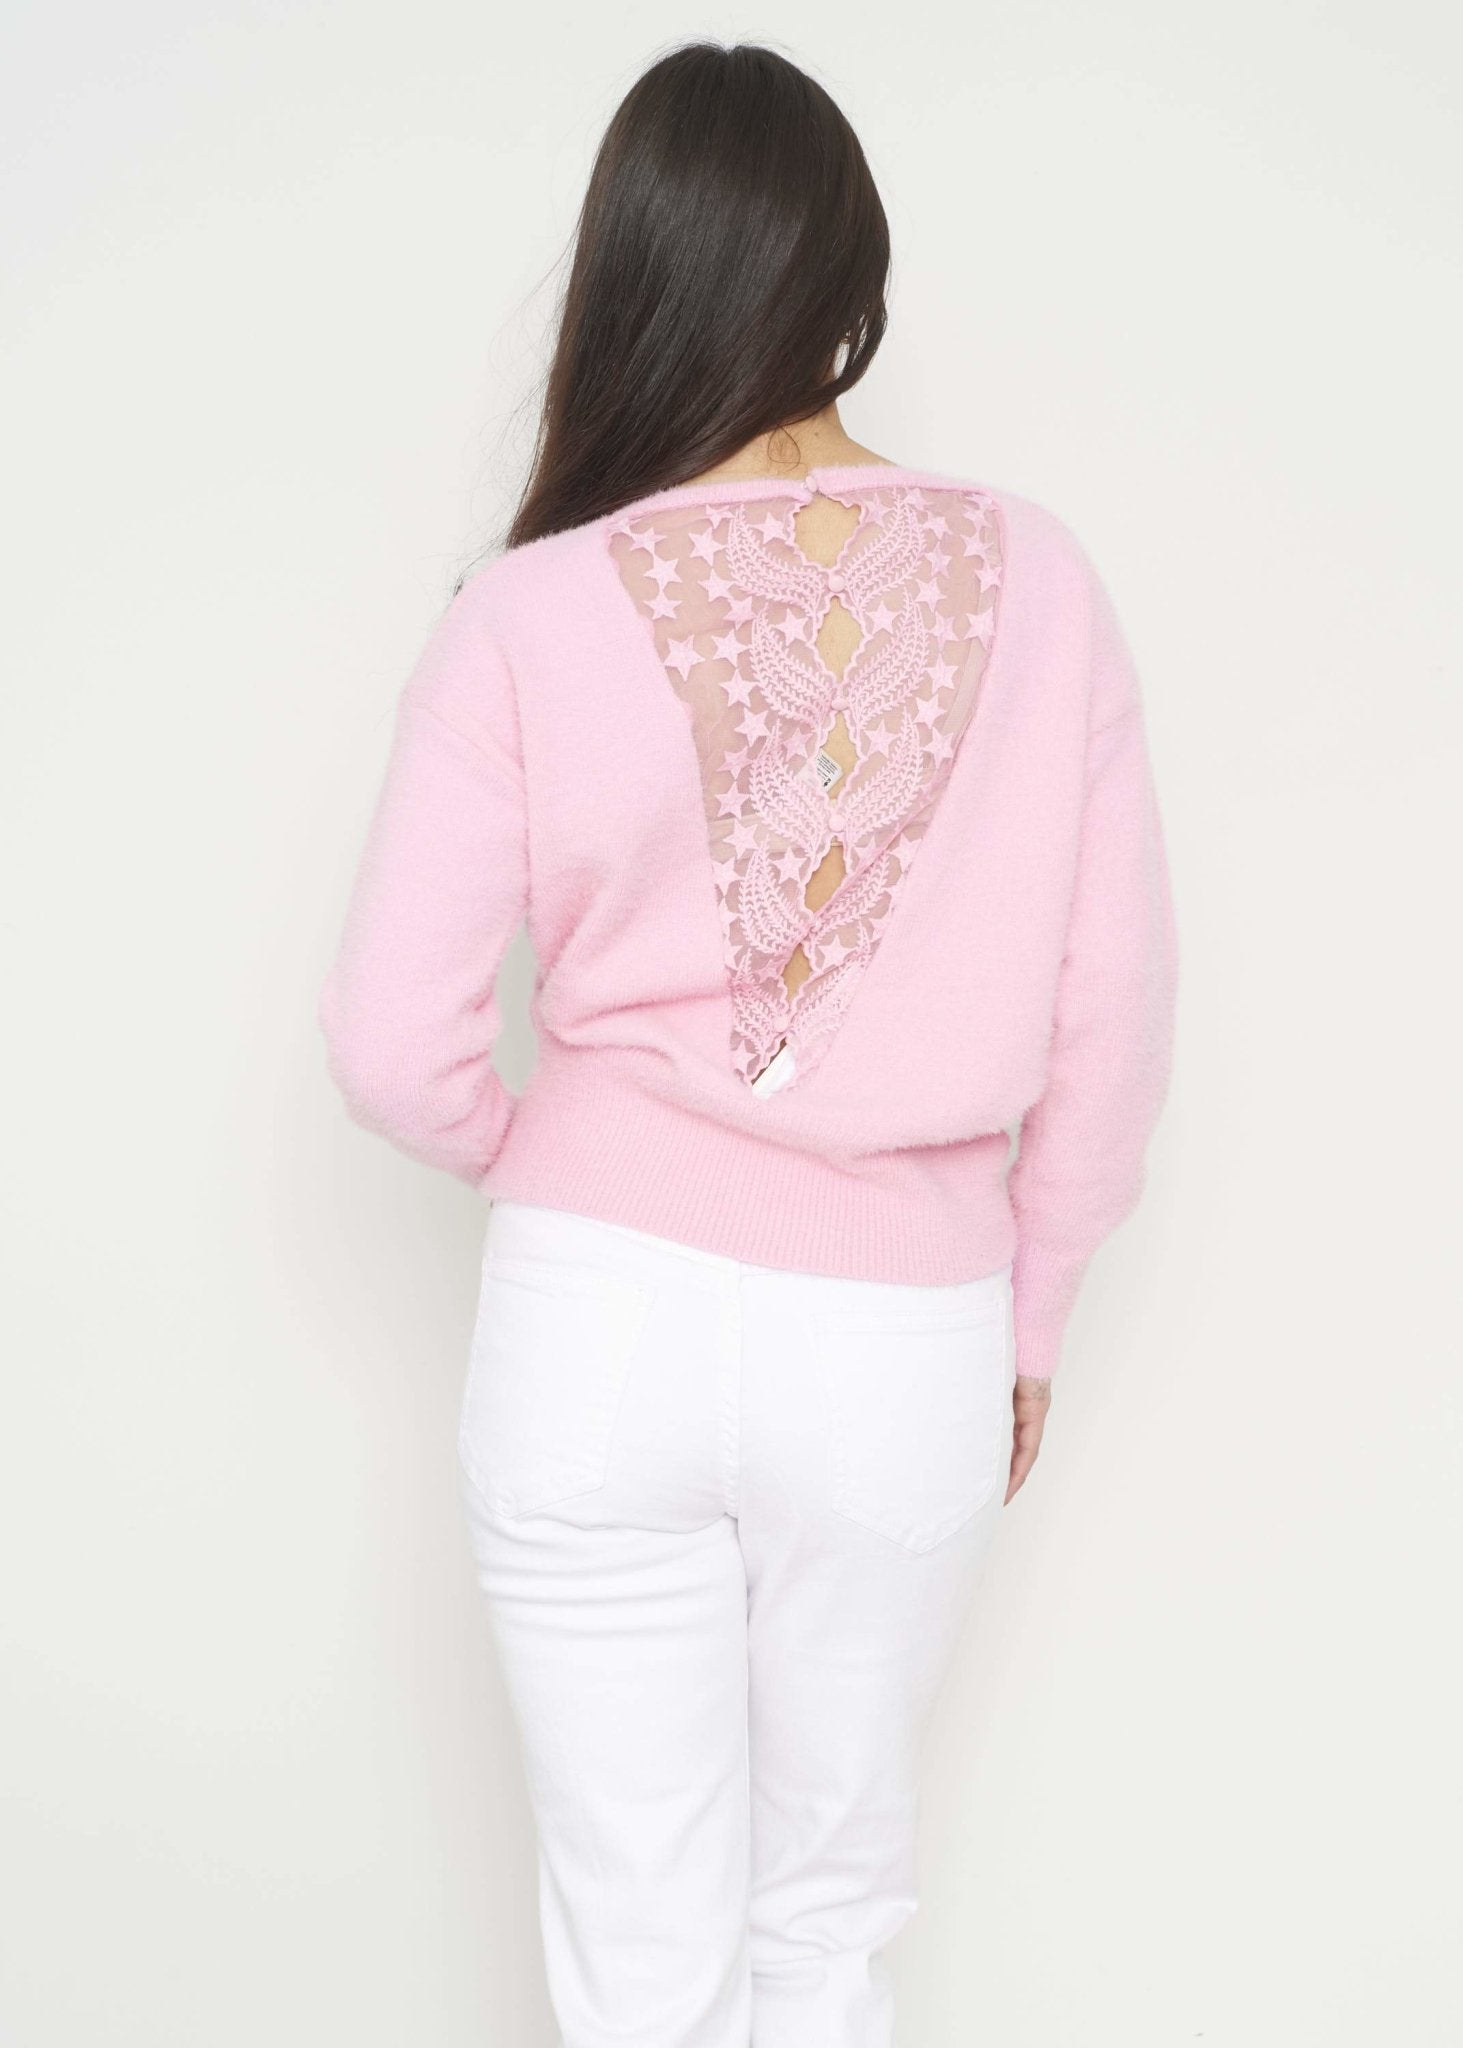 Emilia Lace Back Jumper In Pink - The Walk in Wardrobe